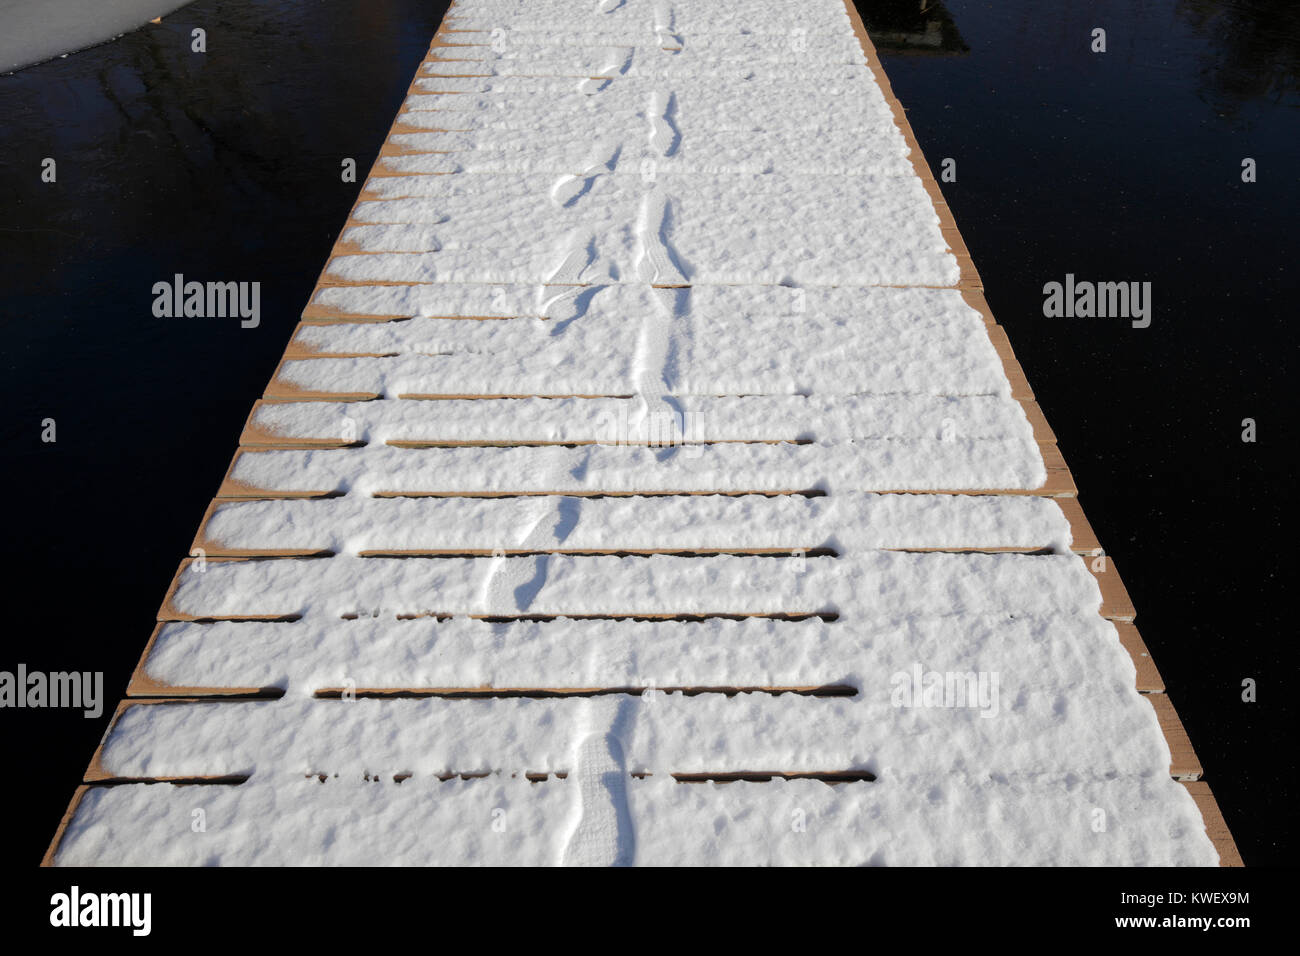 snow  with footstep tracks - Stock Image